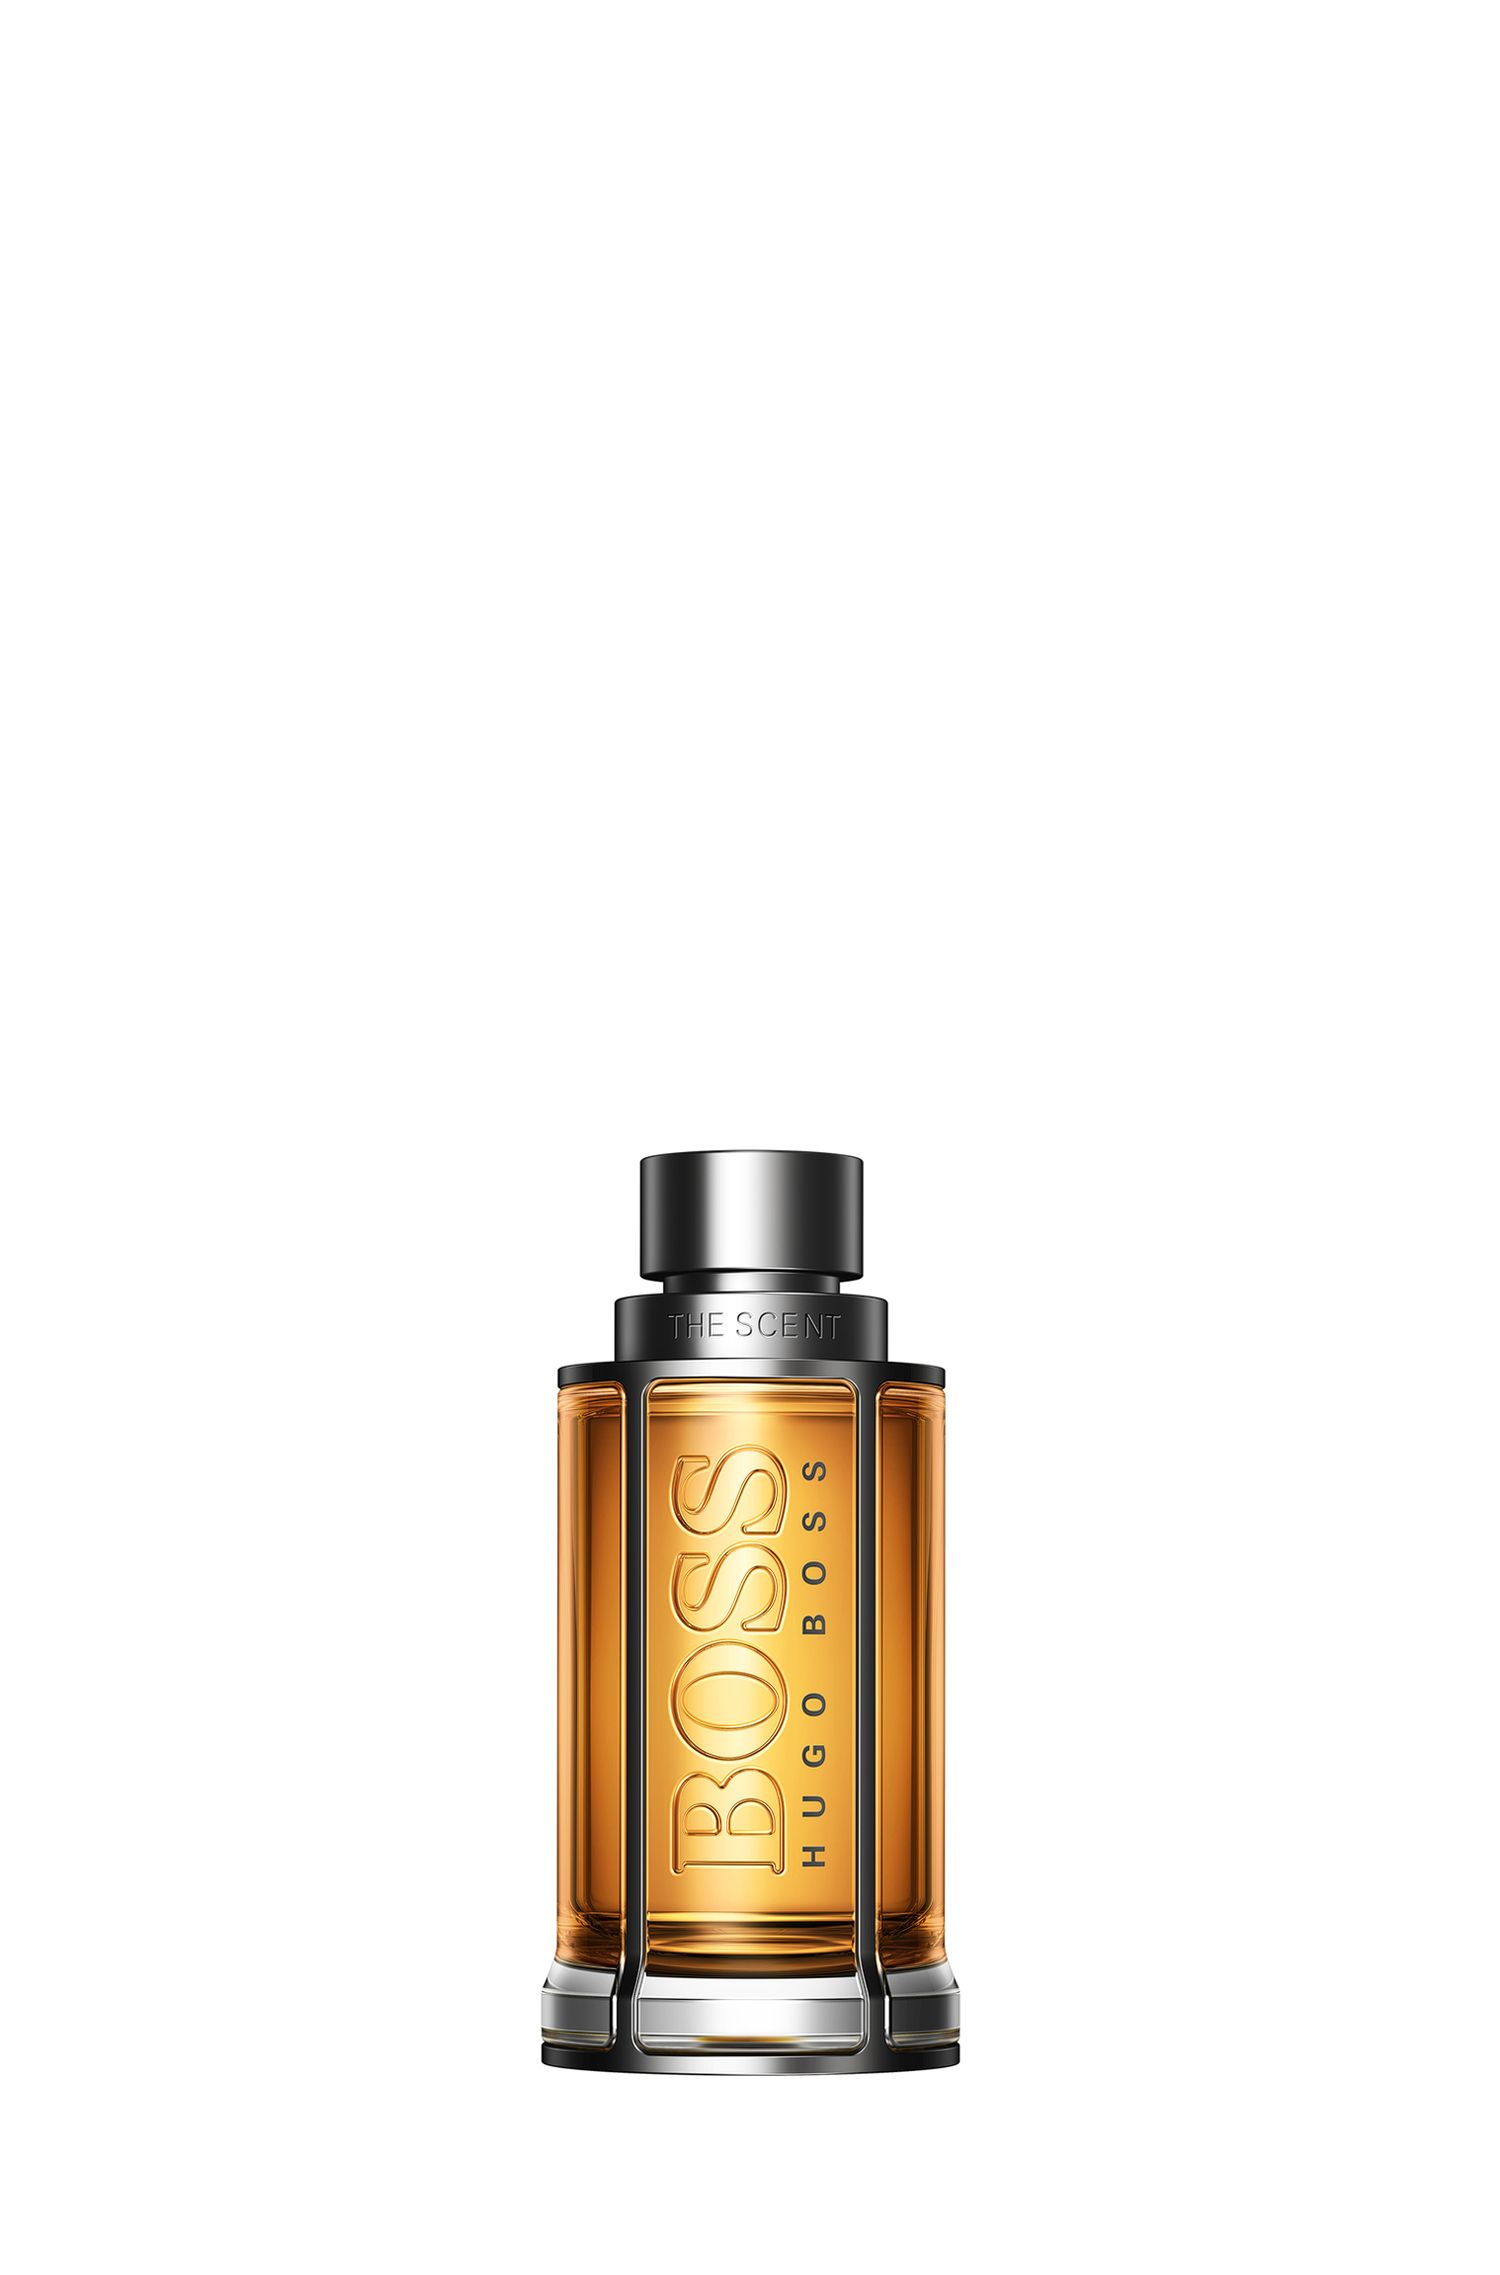 BOSS The Scent eau de toilette 50ml